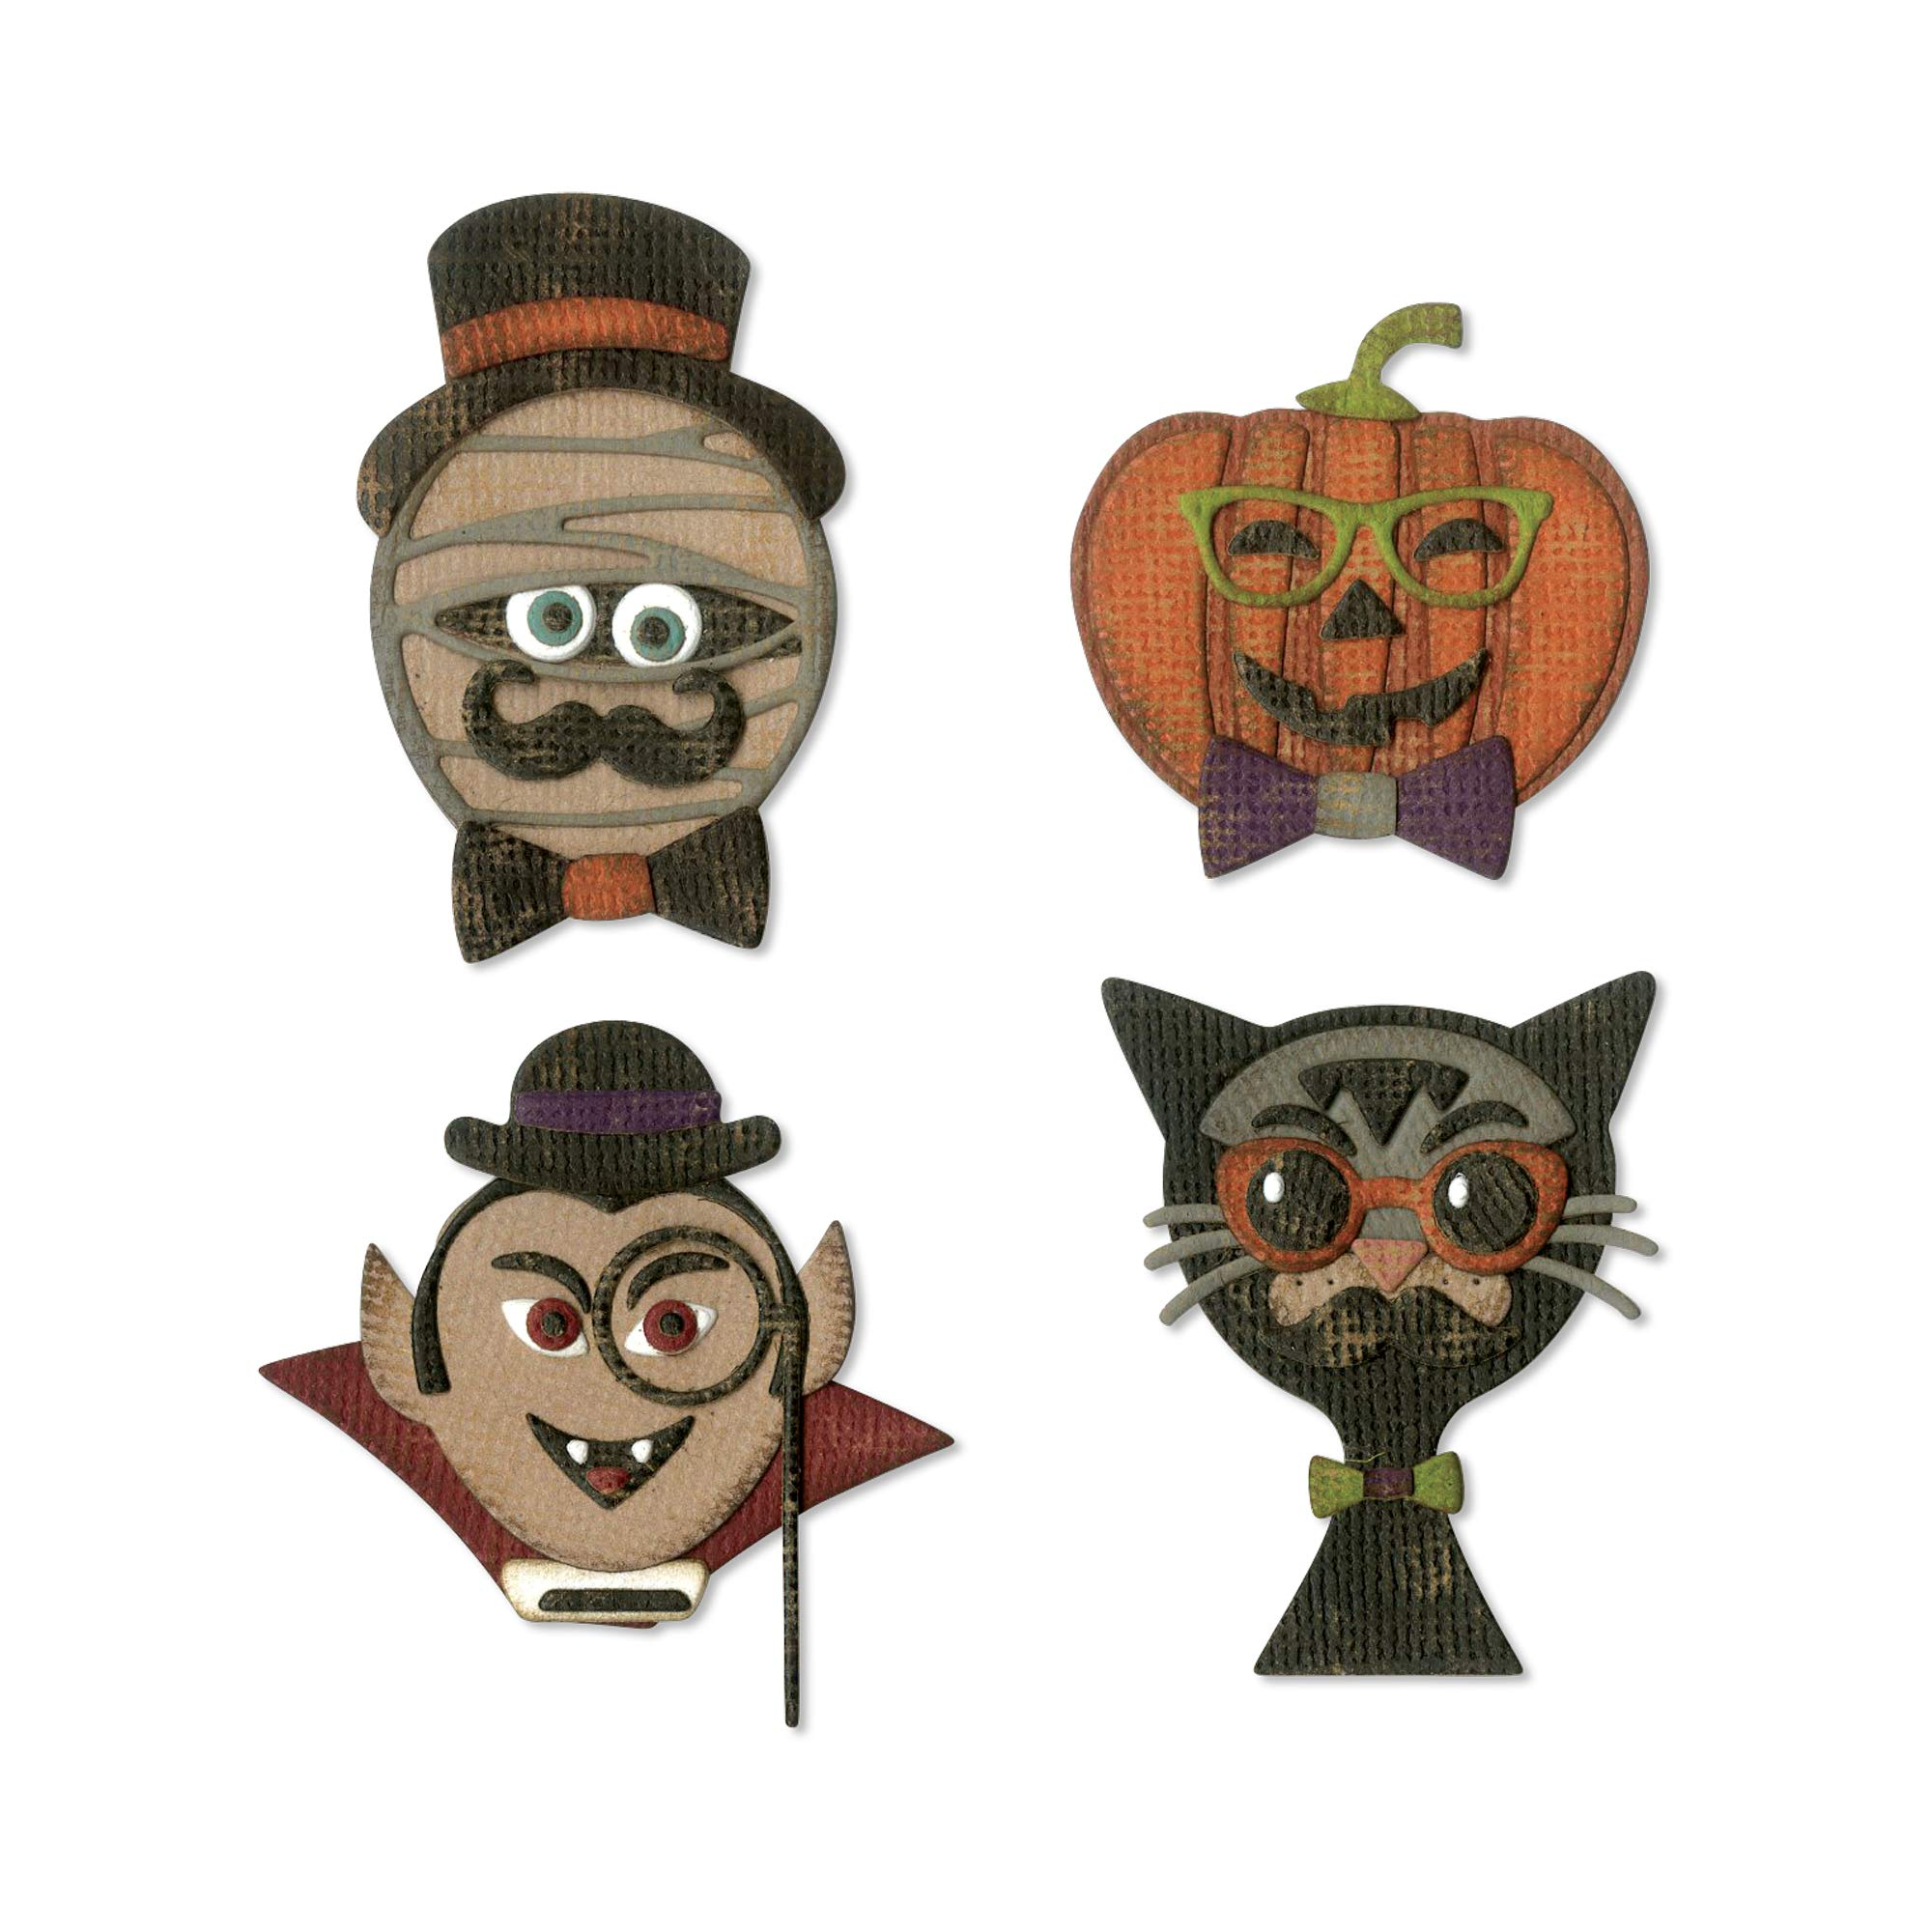 Sizzix 664206 Hip Haunts by Tim Holtz Dies, us:one Size, Multicolor